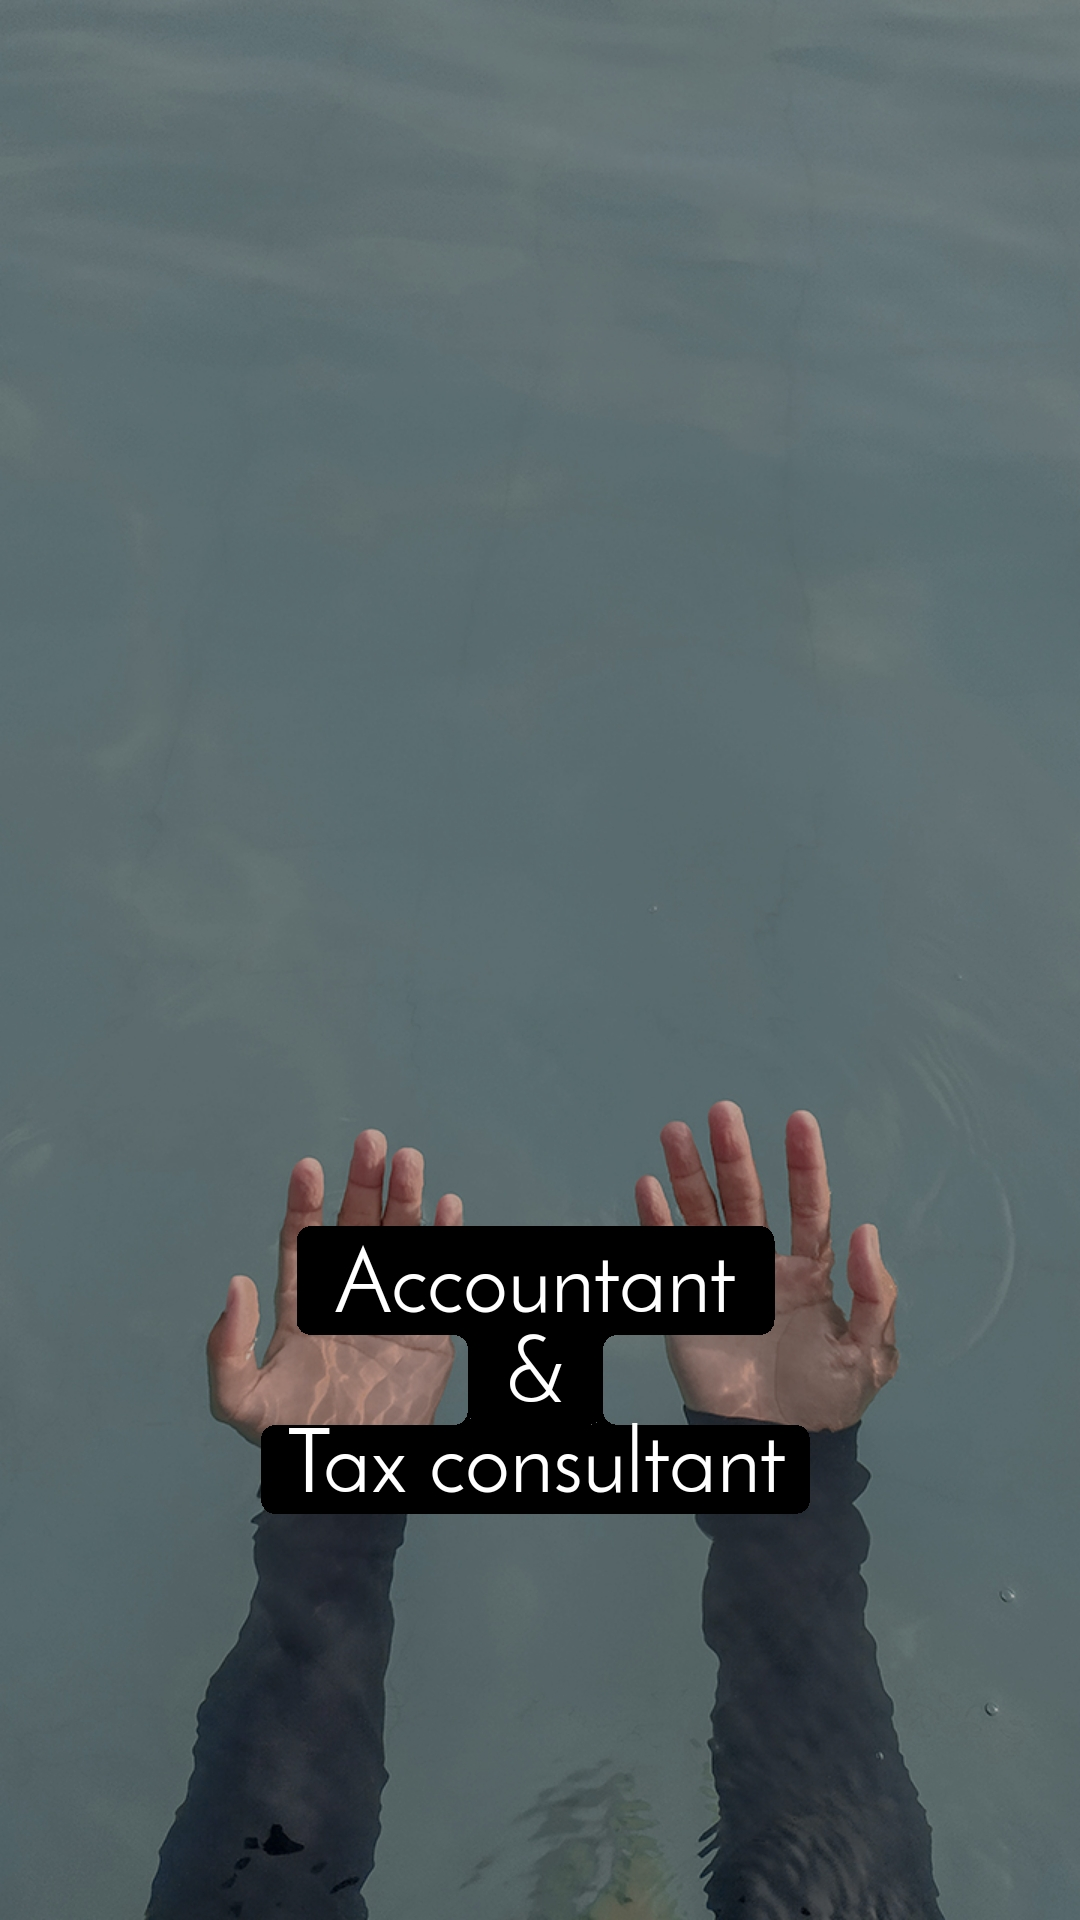 Accountant & Tax consultant